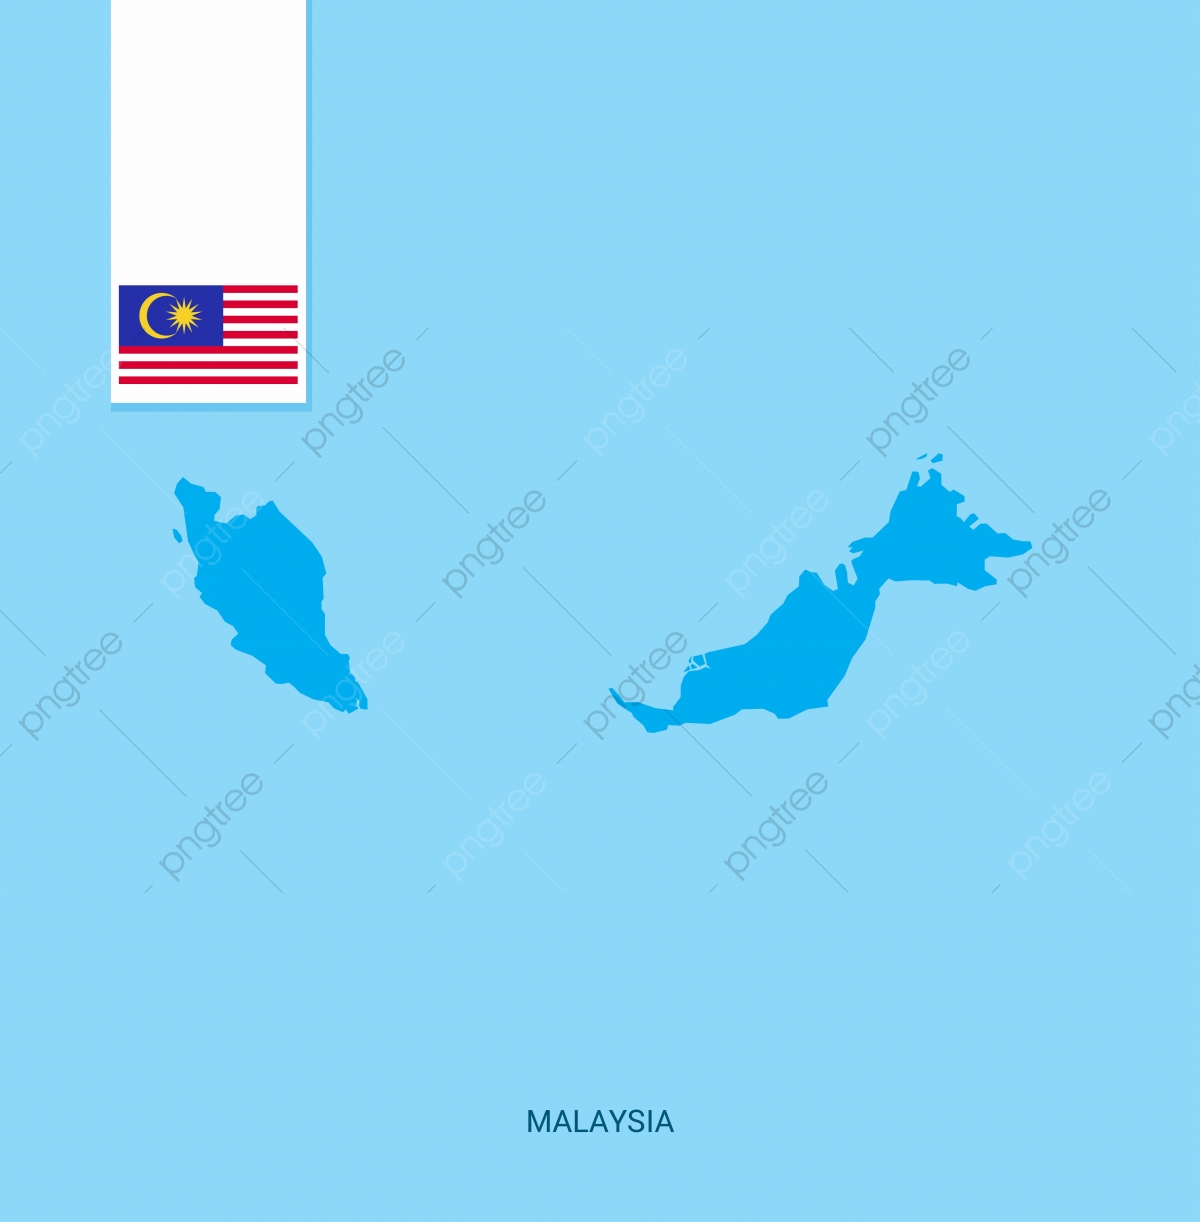 Map Of Asia Malaysia.Malaysia Country Map With Flag Over Blue Background 16 16th Asia